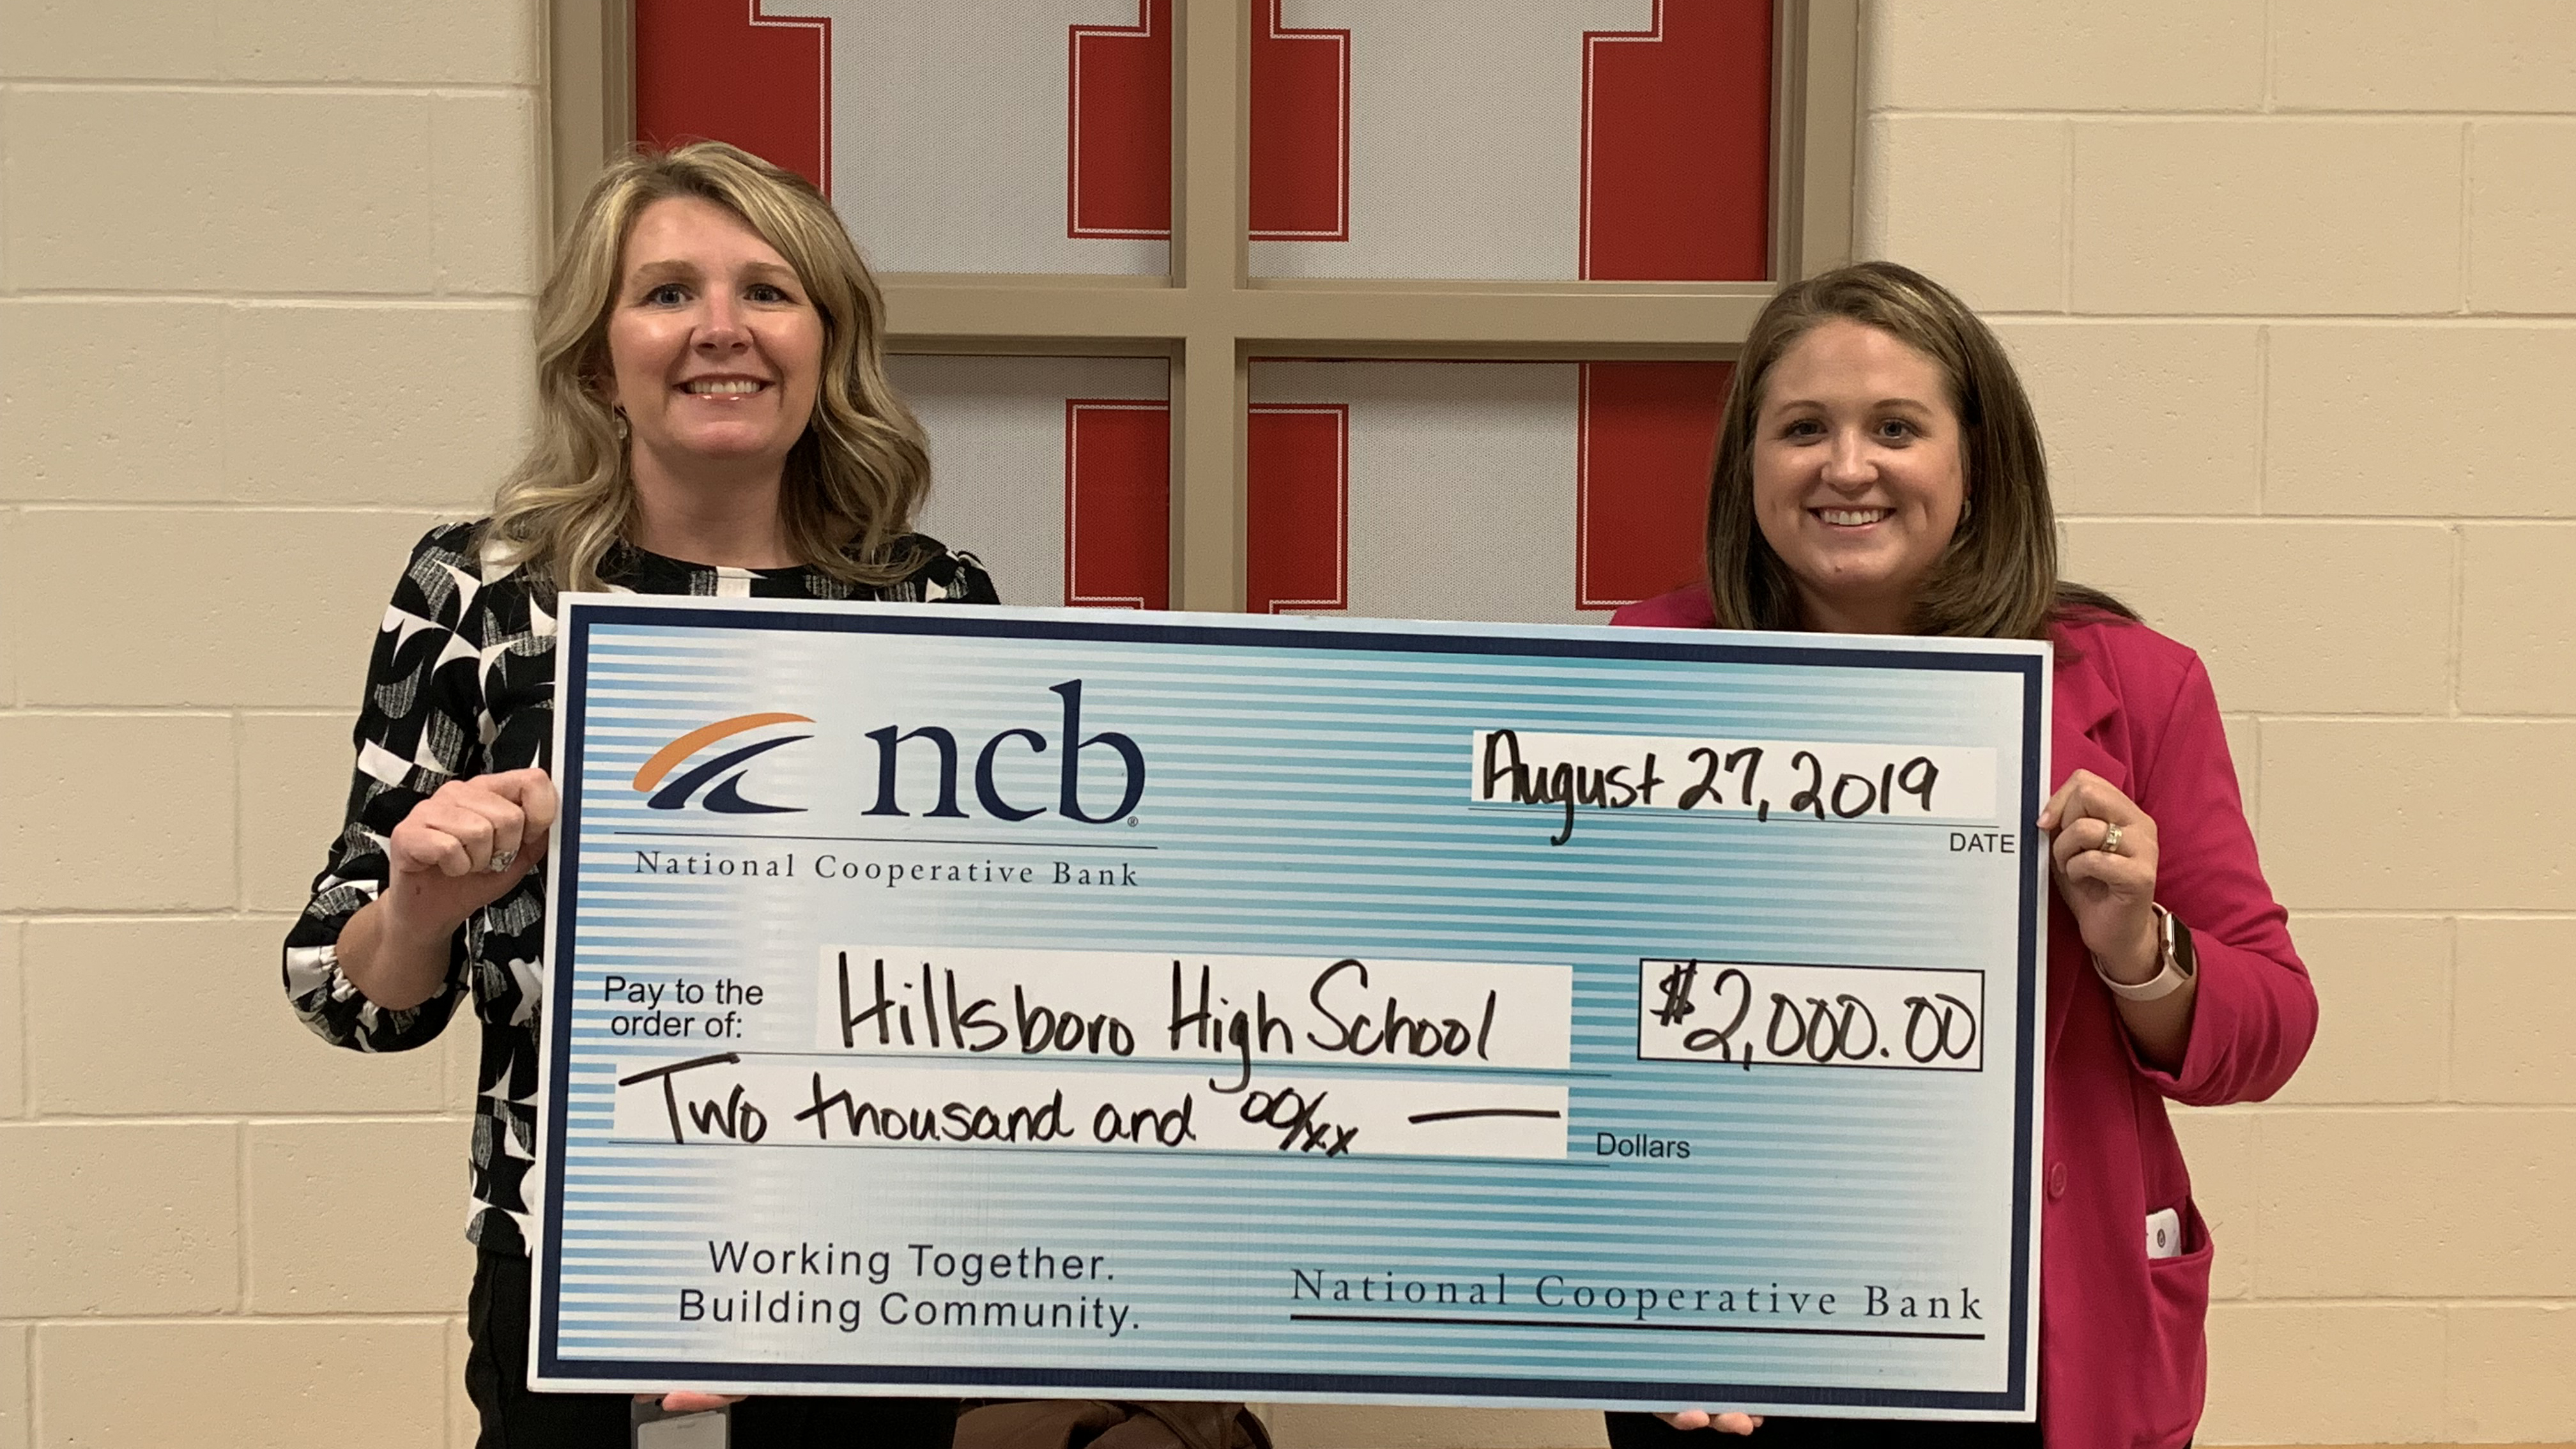 NCB Awards Hillsboro High School a $2,000 Technology Grant